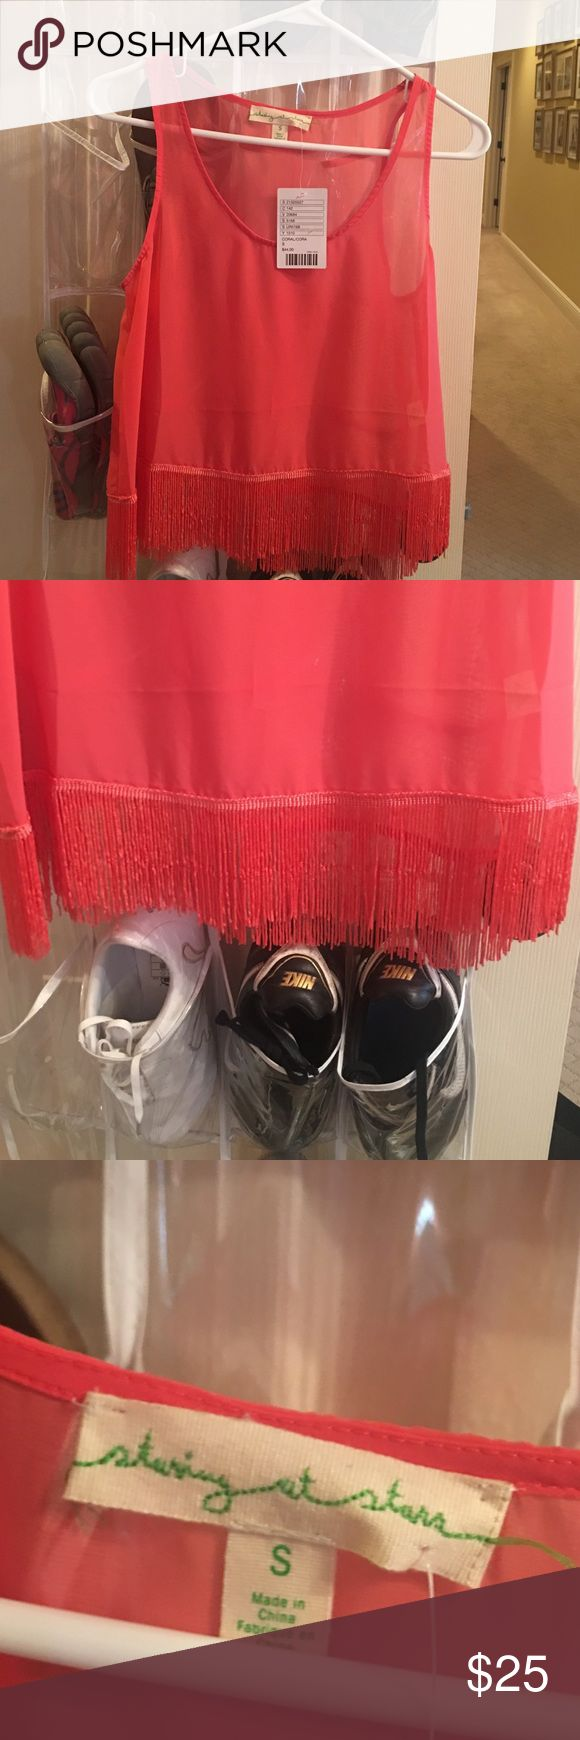 Pink fringe top Never worn. Cute pink fringe top. Tags still on. Size small Tops Tank Tops